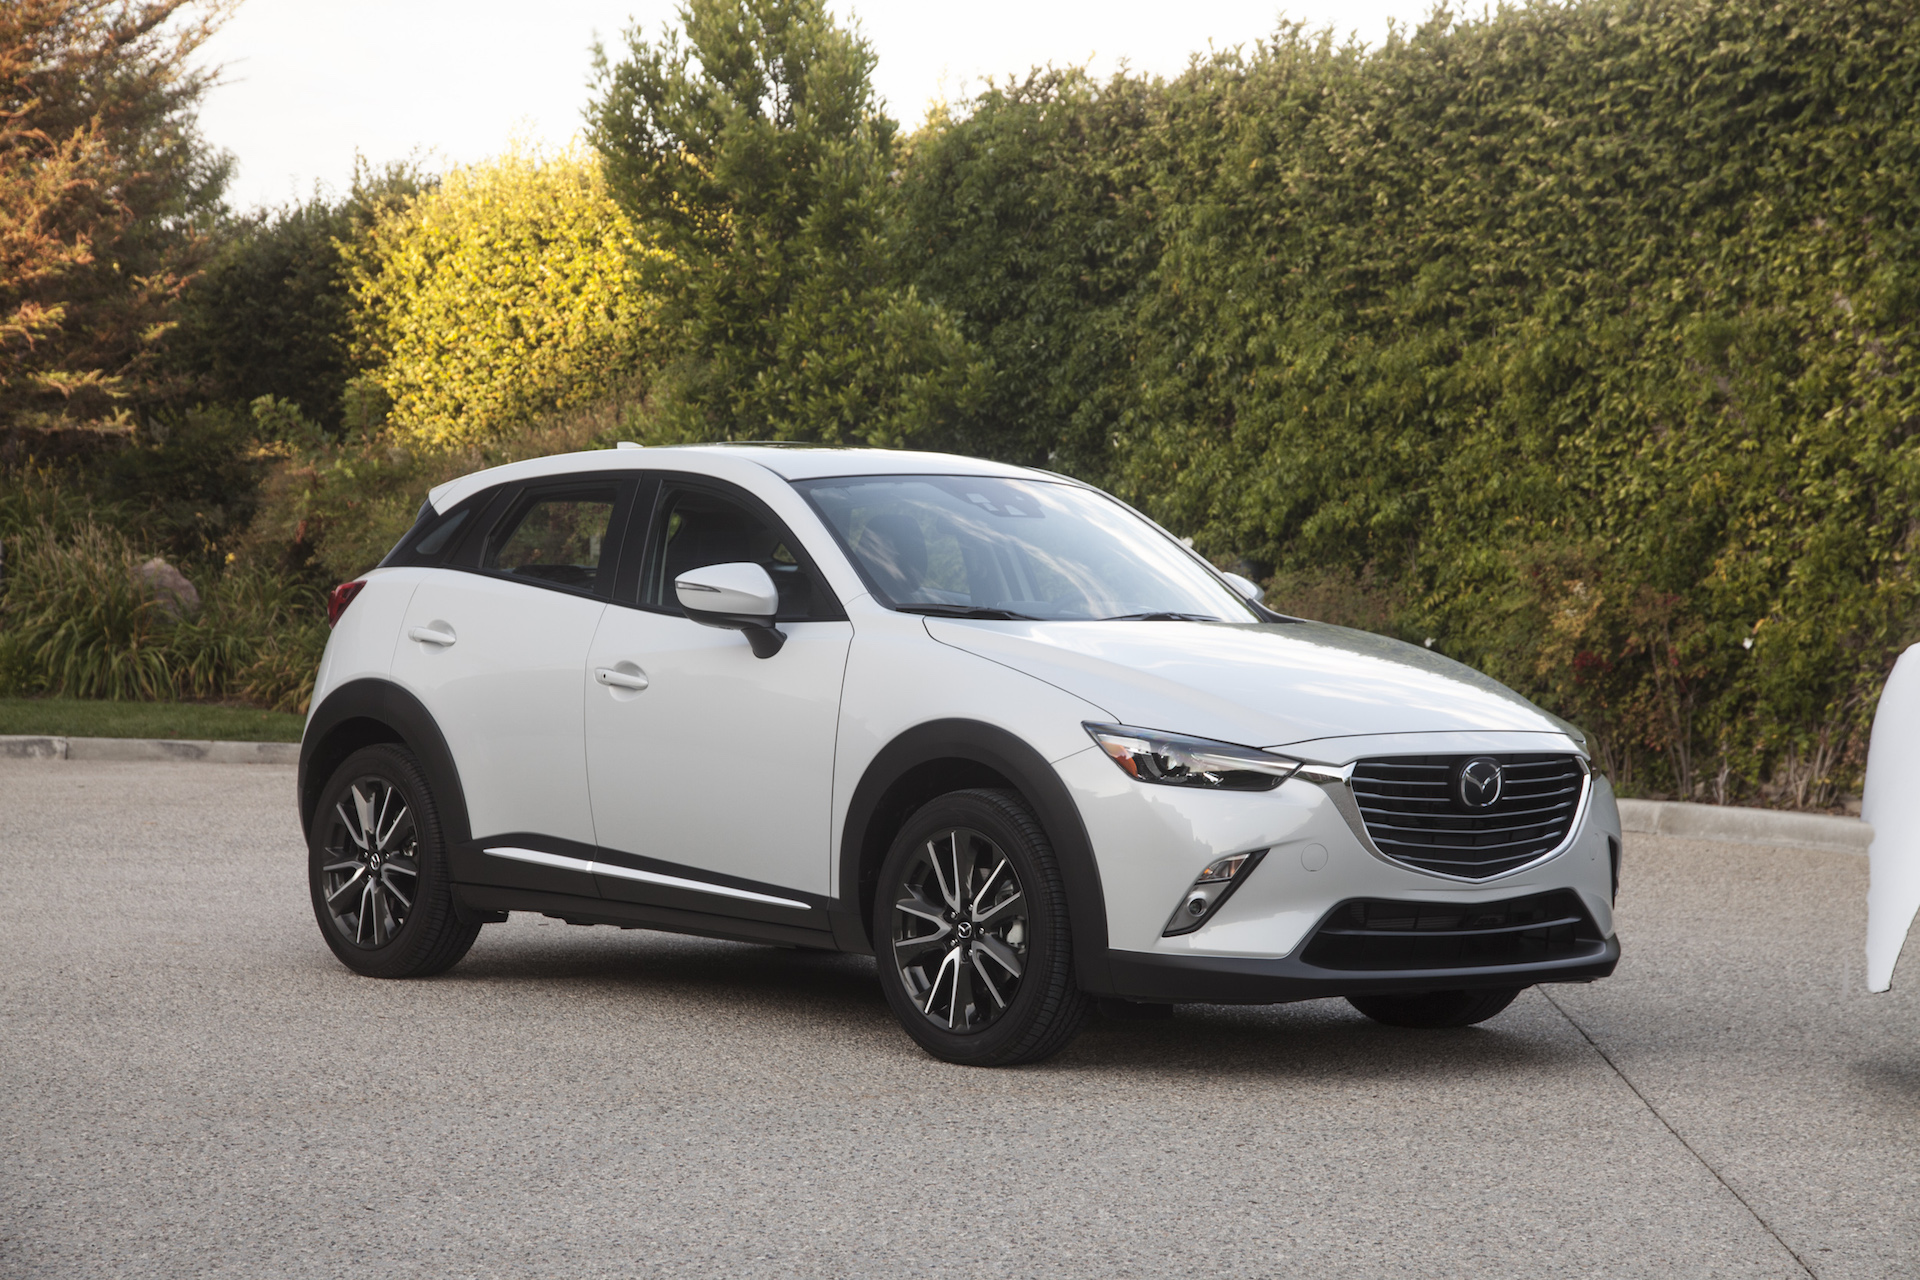 ... Used Mazda CX-3: Prices, Photos, Reviews, Specs - The Car Connection